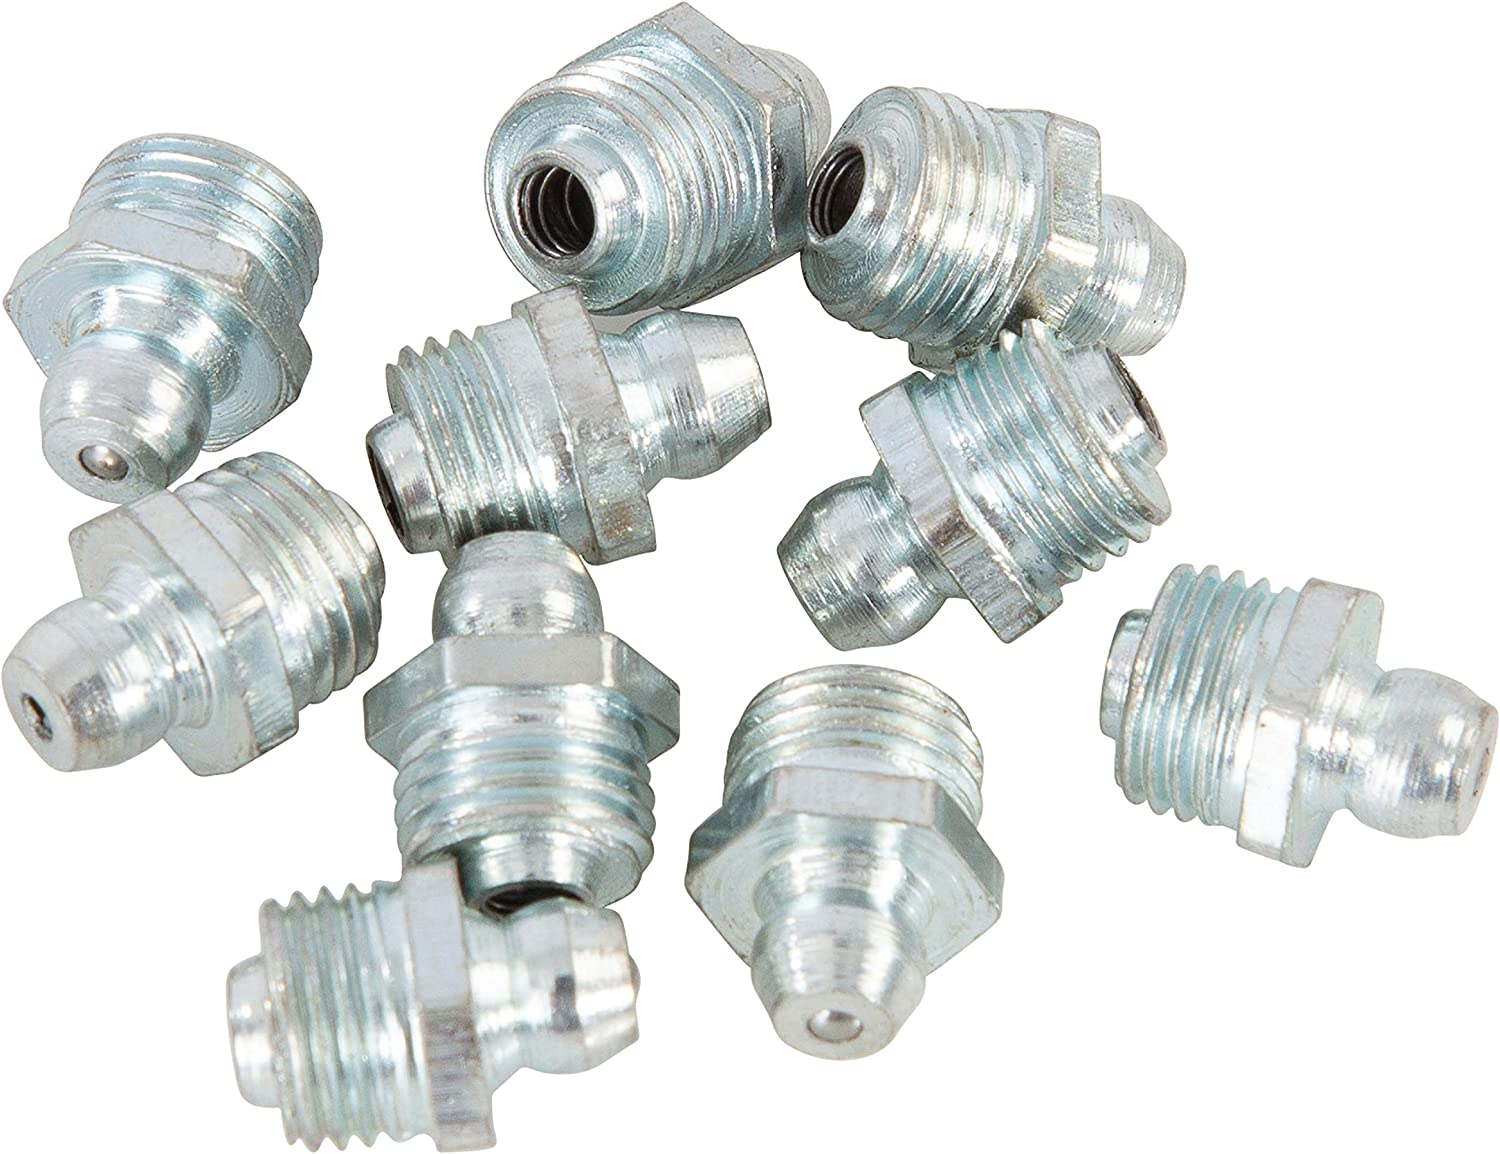 10 mm compression elbows pack of ten